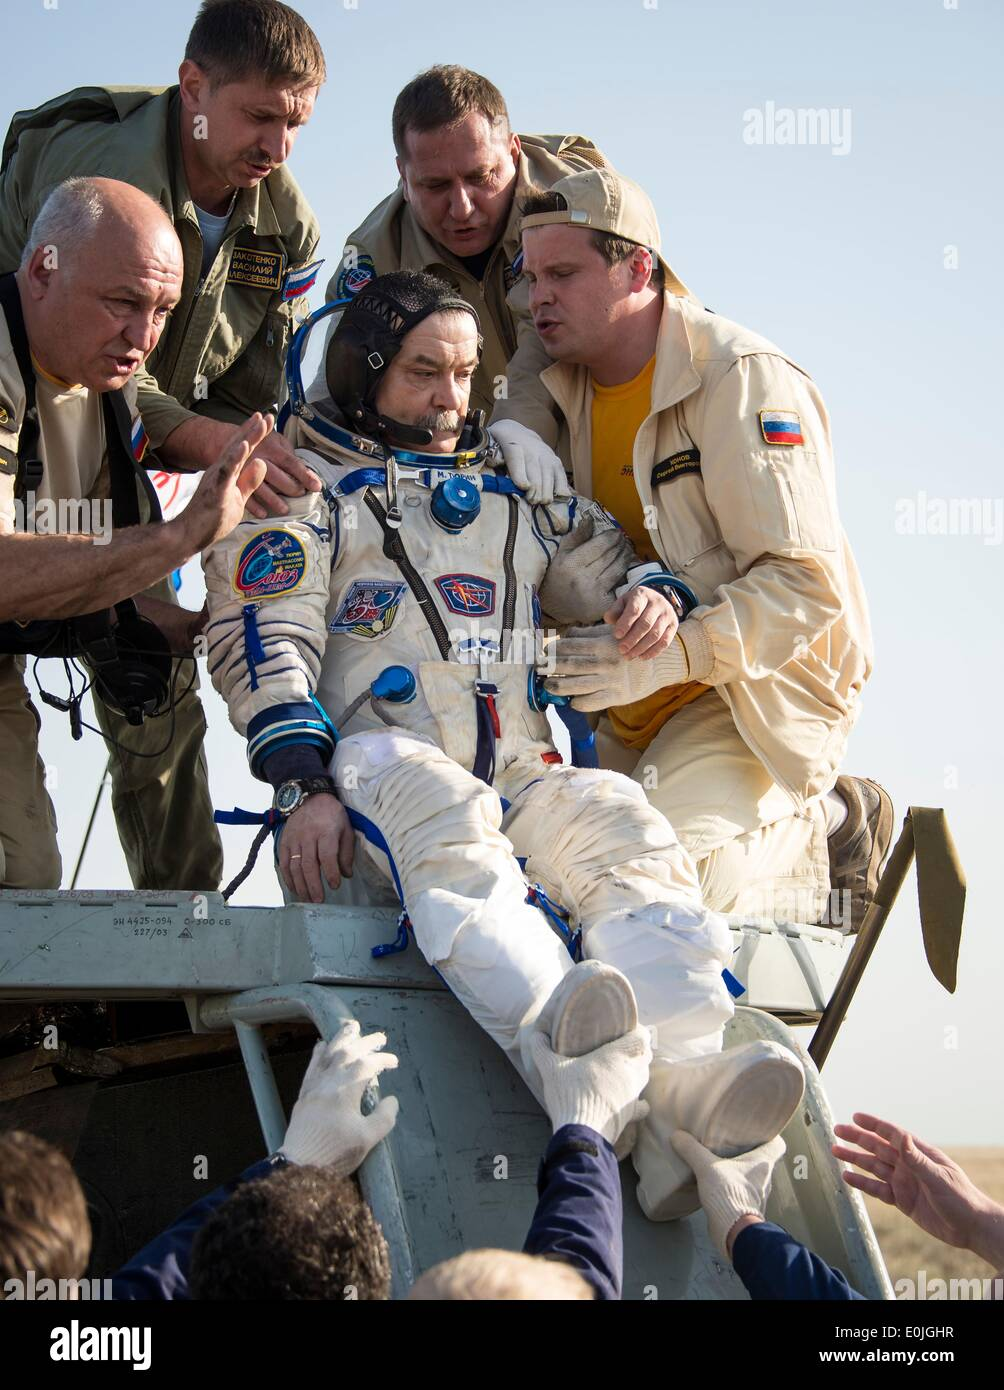 ISS Expedition 39 Soyuz Commander Mikhail Tyurin of Roscosmos is helped out of the capsule just minutes after landing with fellow expedition crew members in the Soyuz TMA-11M spacecraft May 14, 2014 near the town of Zhezkazgan, Kazakhstan. Wakata, Tyurin and Mastracchio returned to Earth after more than six months onboard the International Space Station where they served as members of the Expedition 38 and 39 crews. - Stock Image